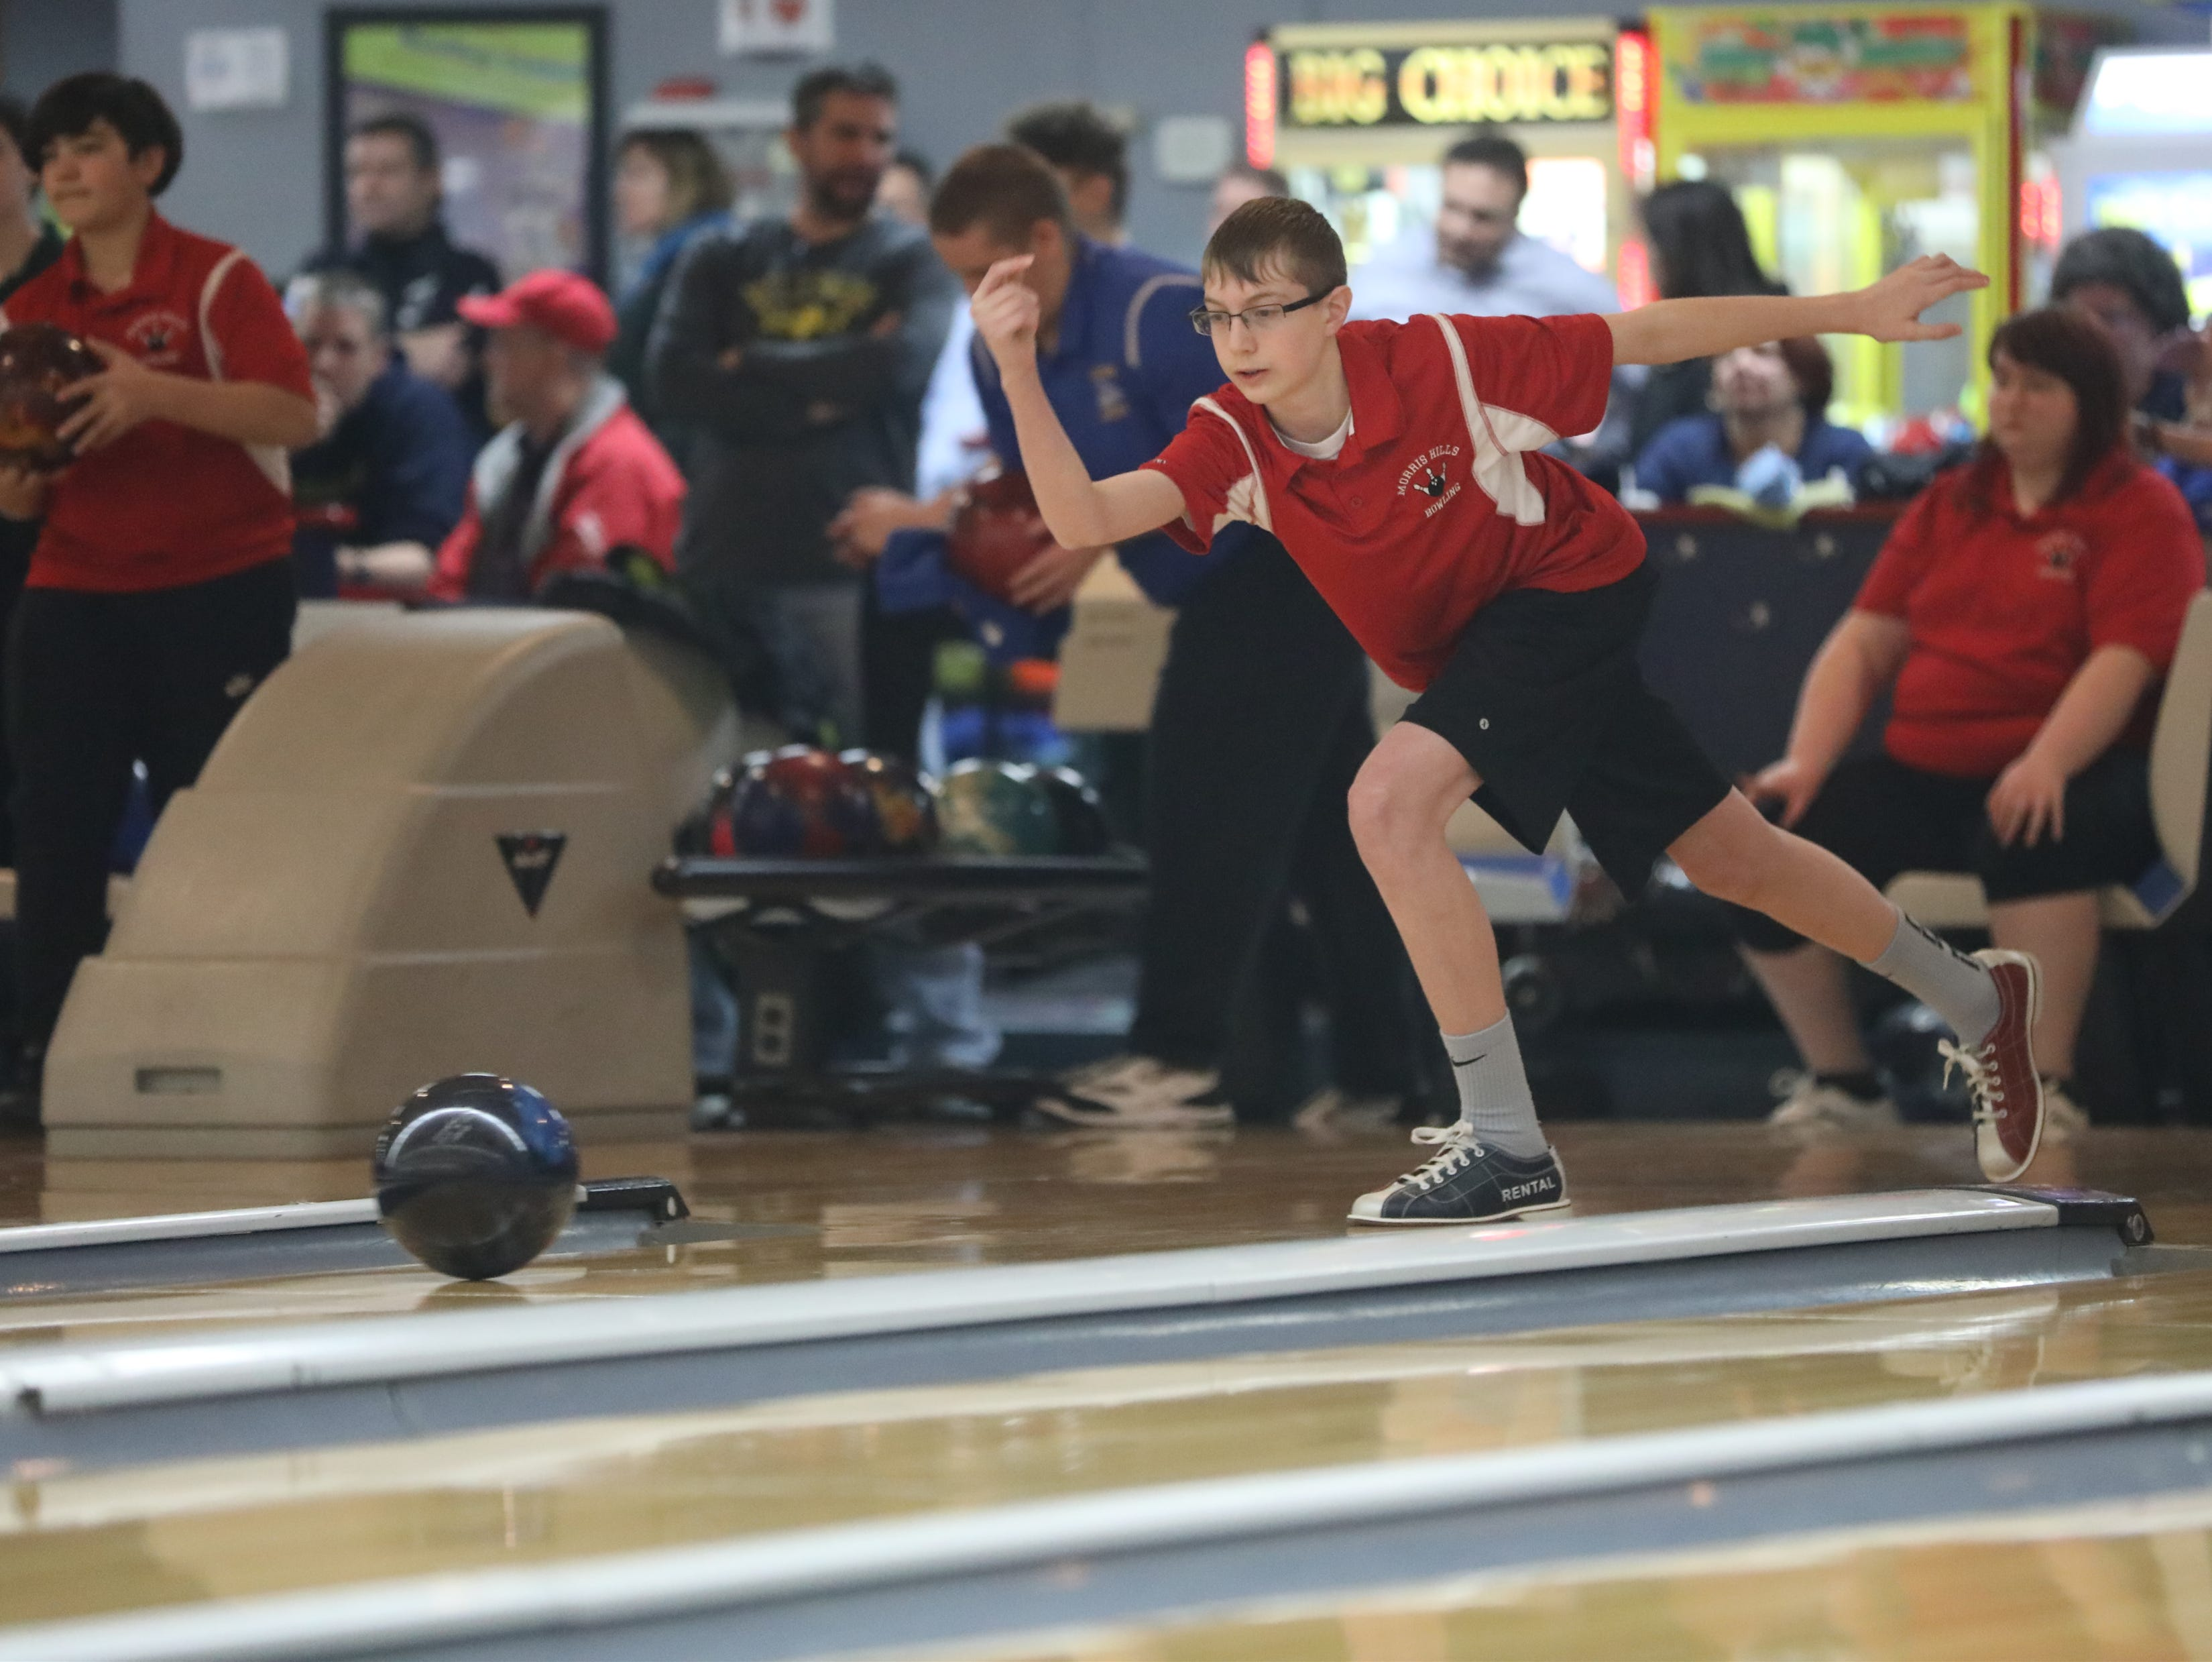 Alex Furman, of Morris Hills, competes at the Morris County Bowling Tournament, in Rockaway. Thursday, January 24, 2019